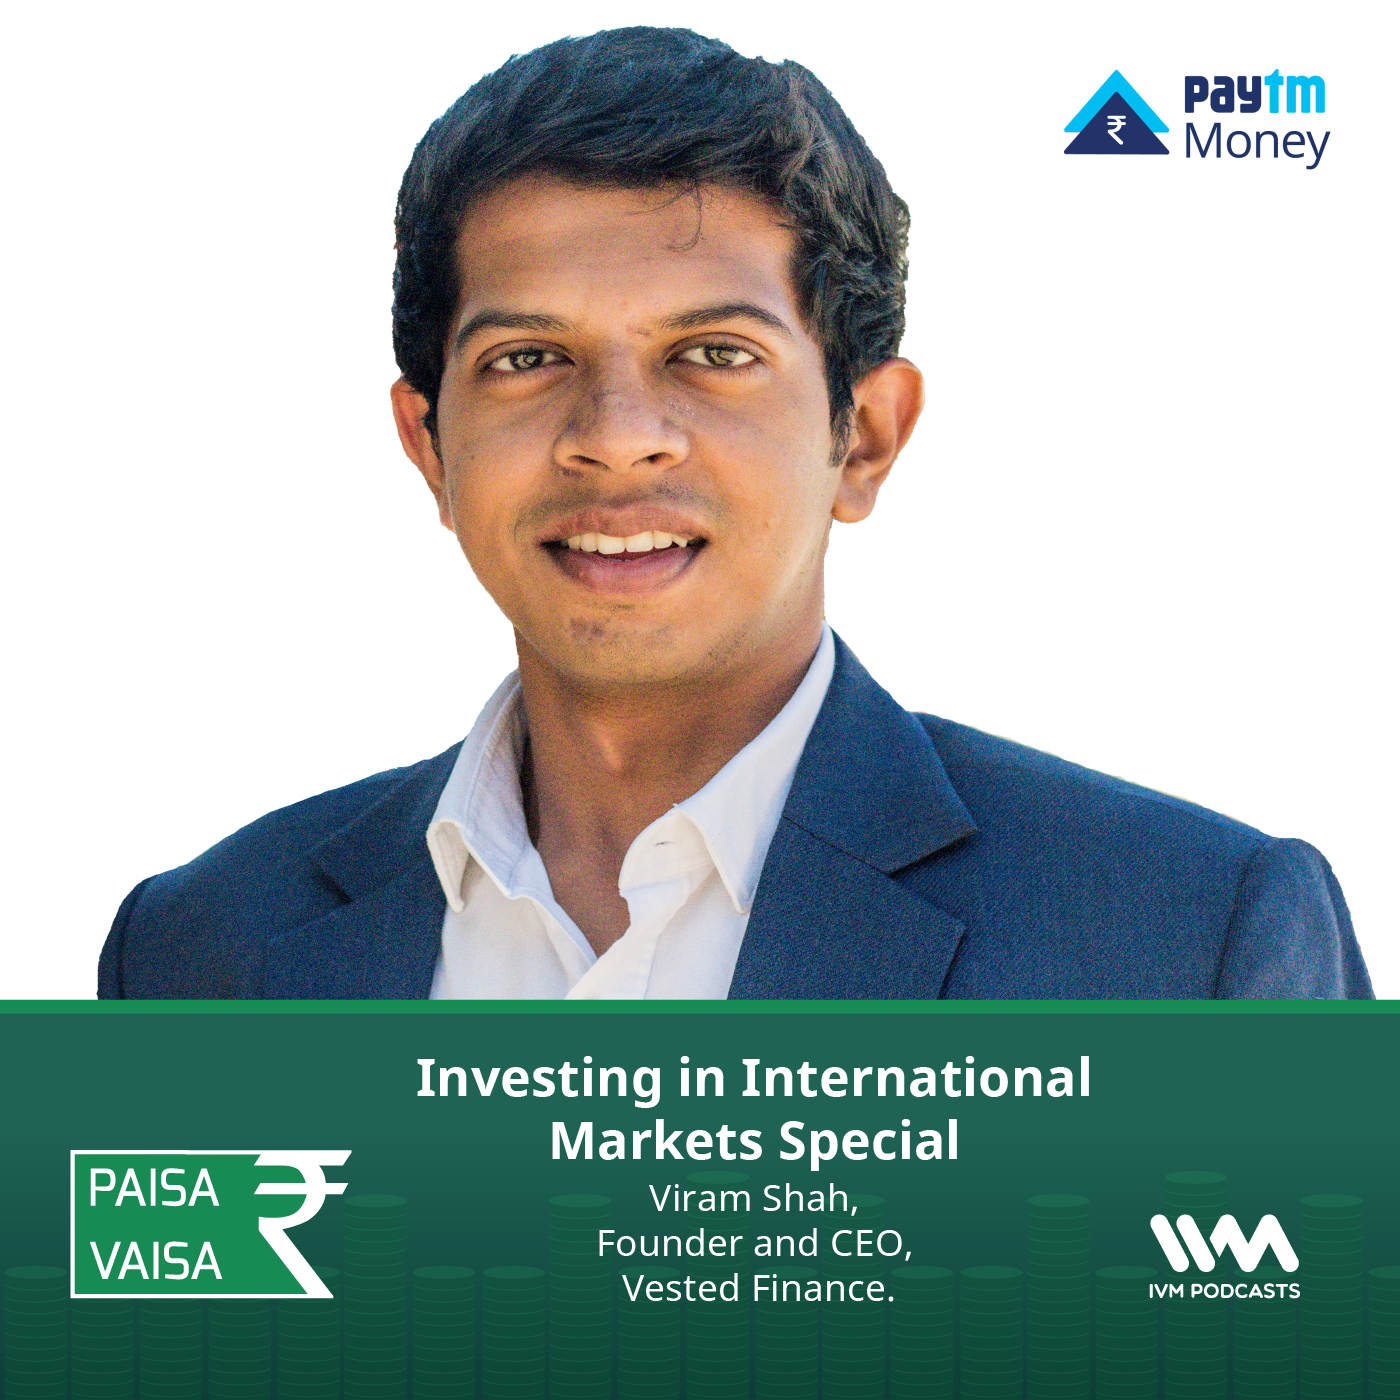 Ep. 237: Investing in International Markets Special